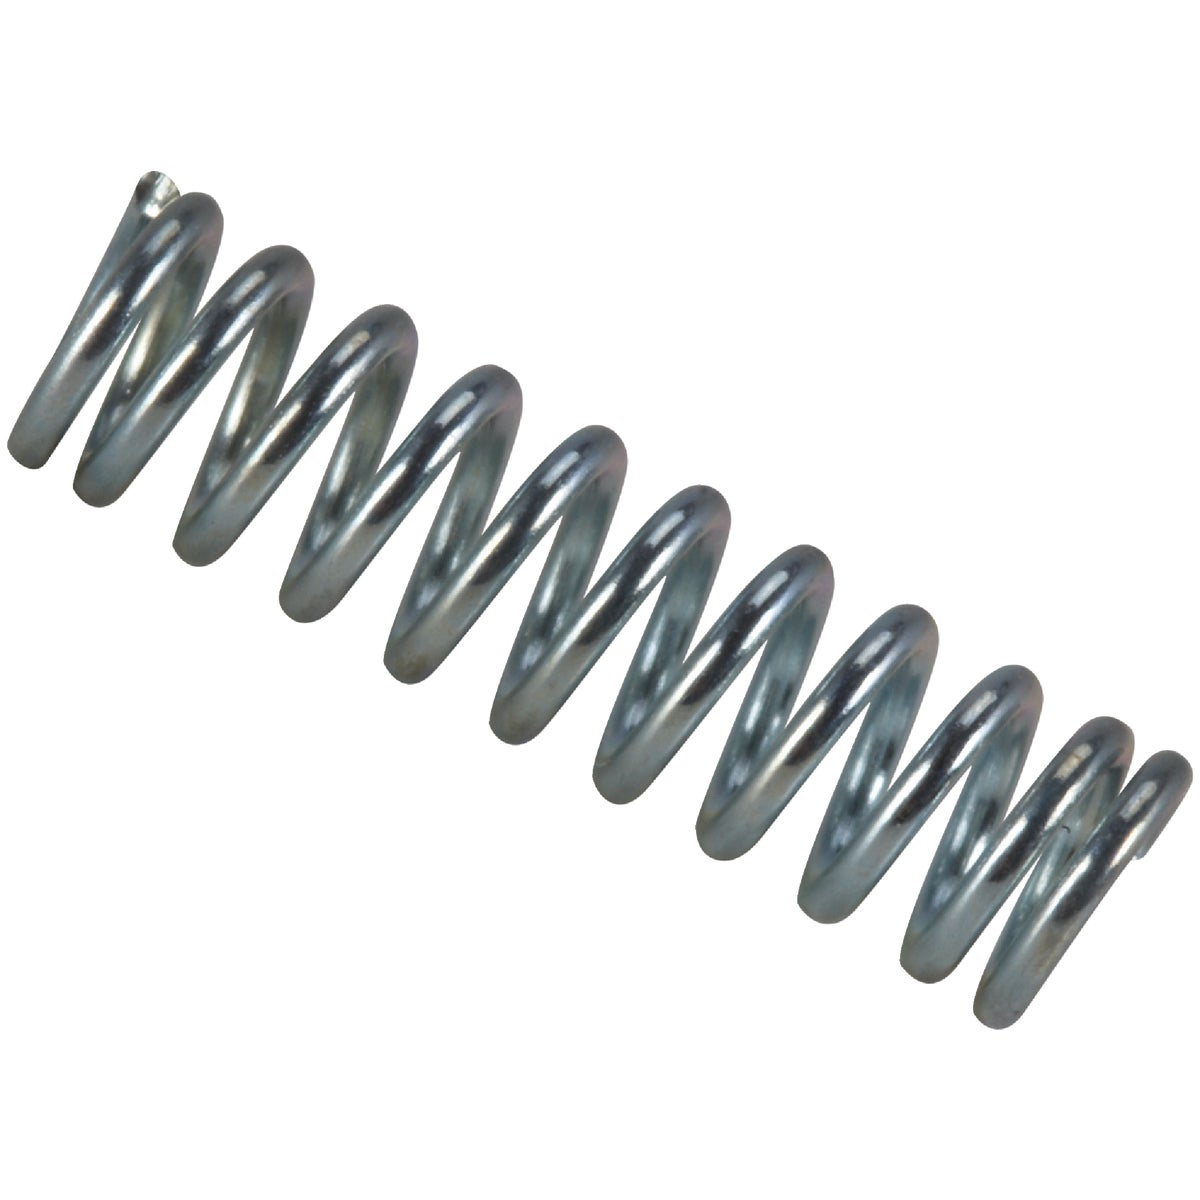 COMPRESSION SPRING - C-632 by Century Spring Corp